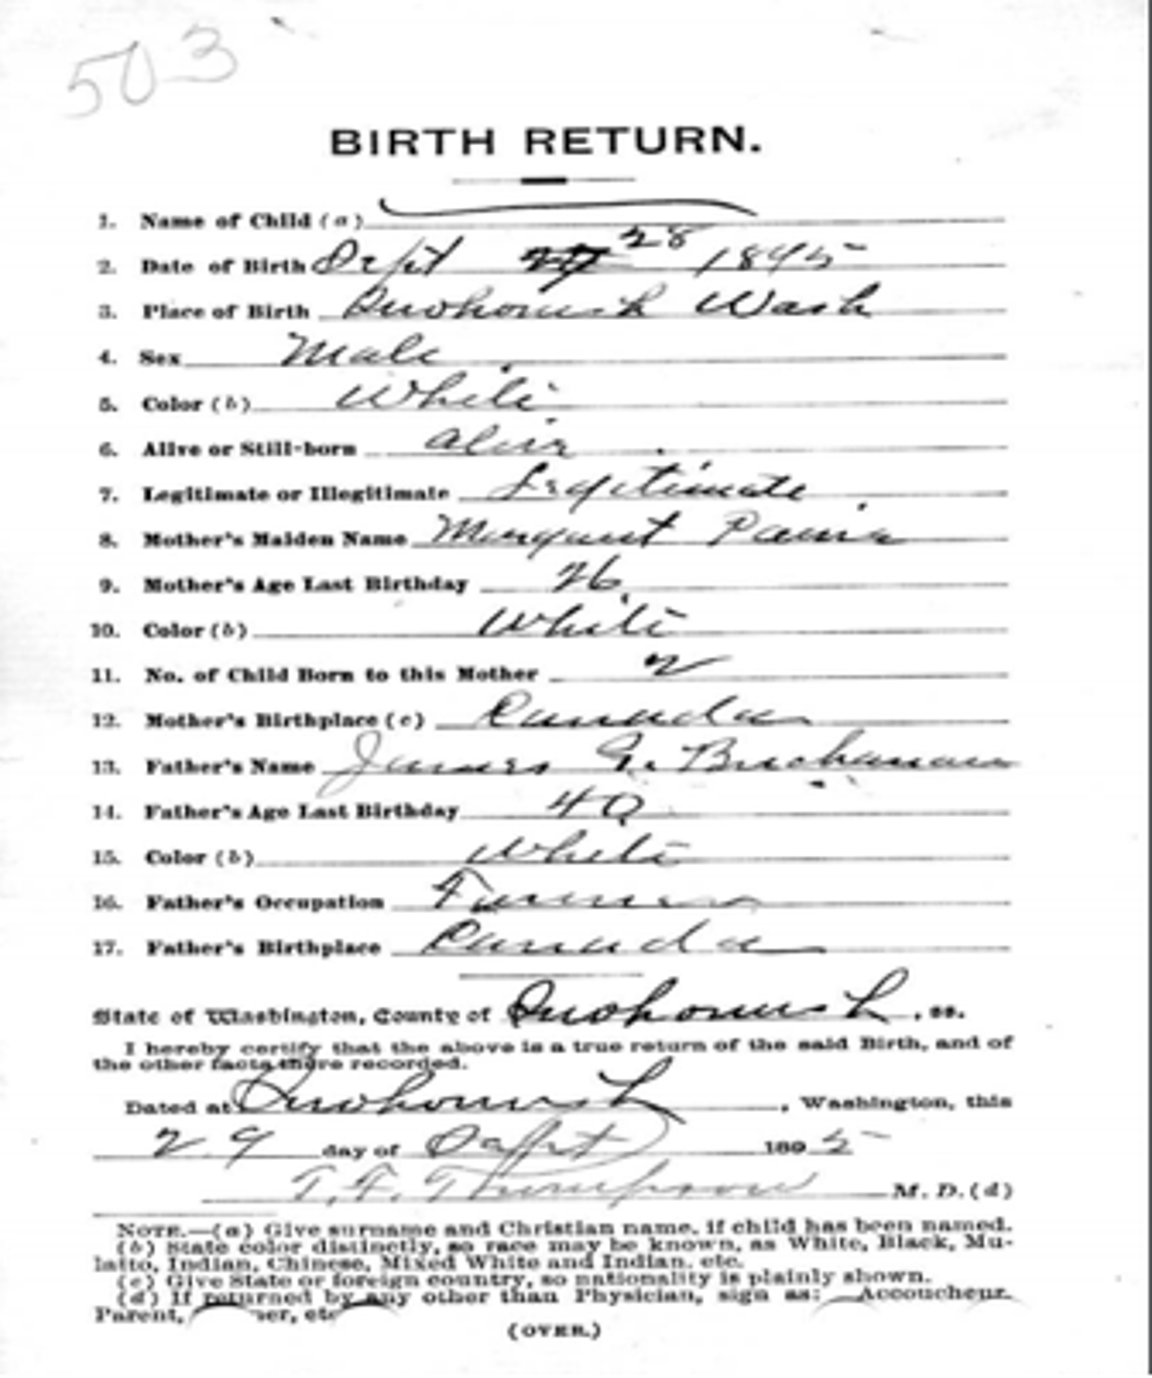 Birth certificate of George Buchanan.